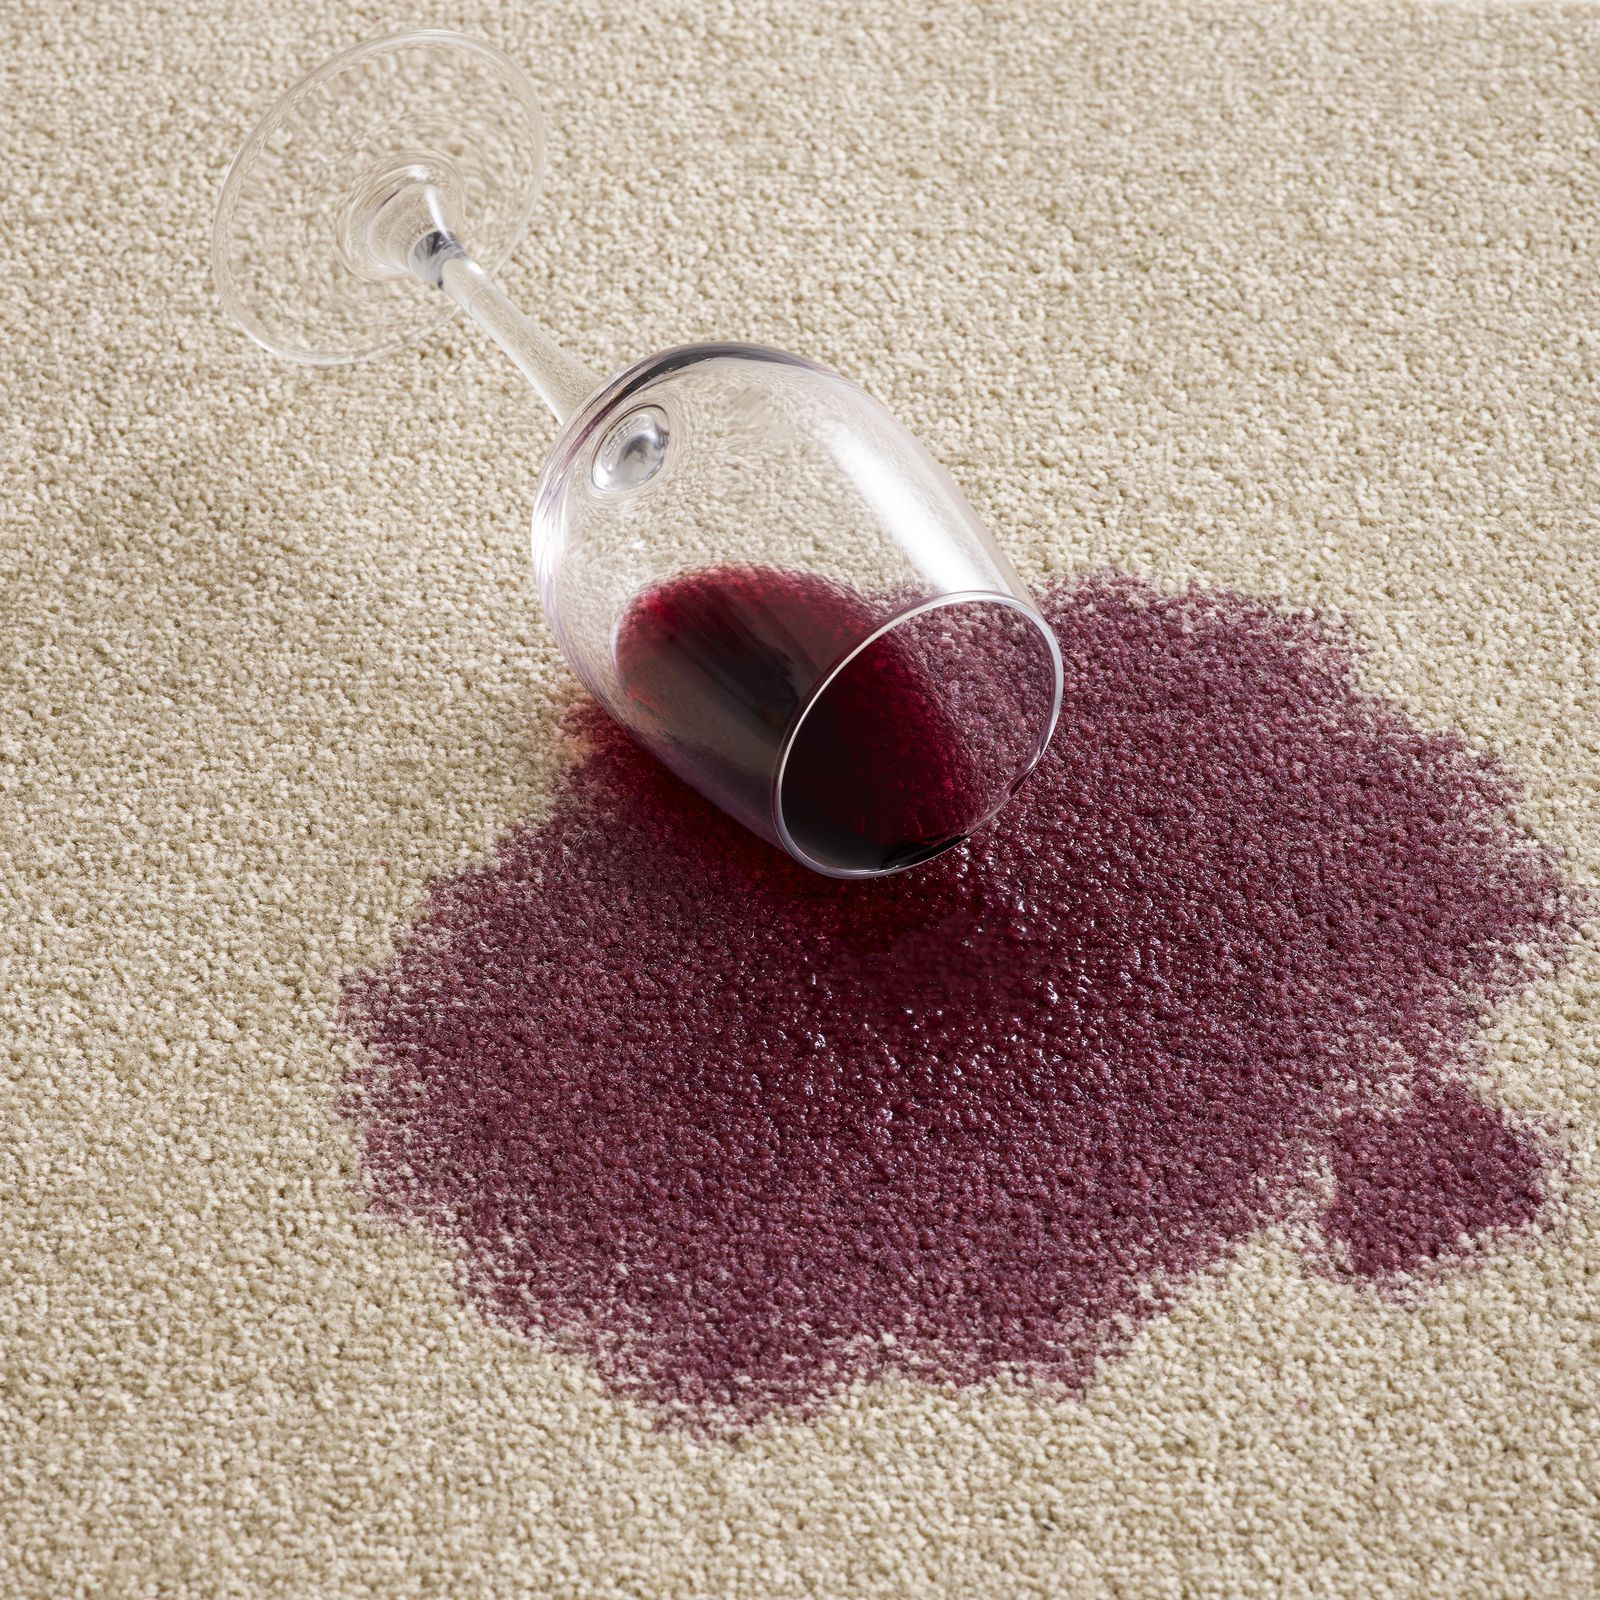 Calling All Red Wine Lovers This Wine Away Stain Remover Is An Absolute Must Red Wine Stains Wine Stains Red Wine Stain Removal